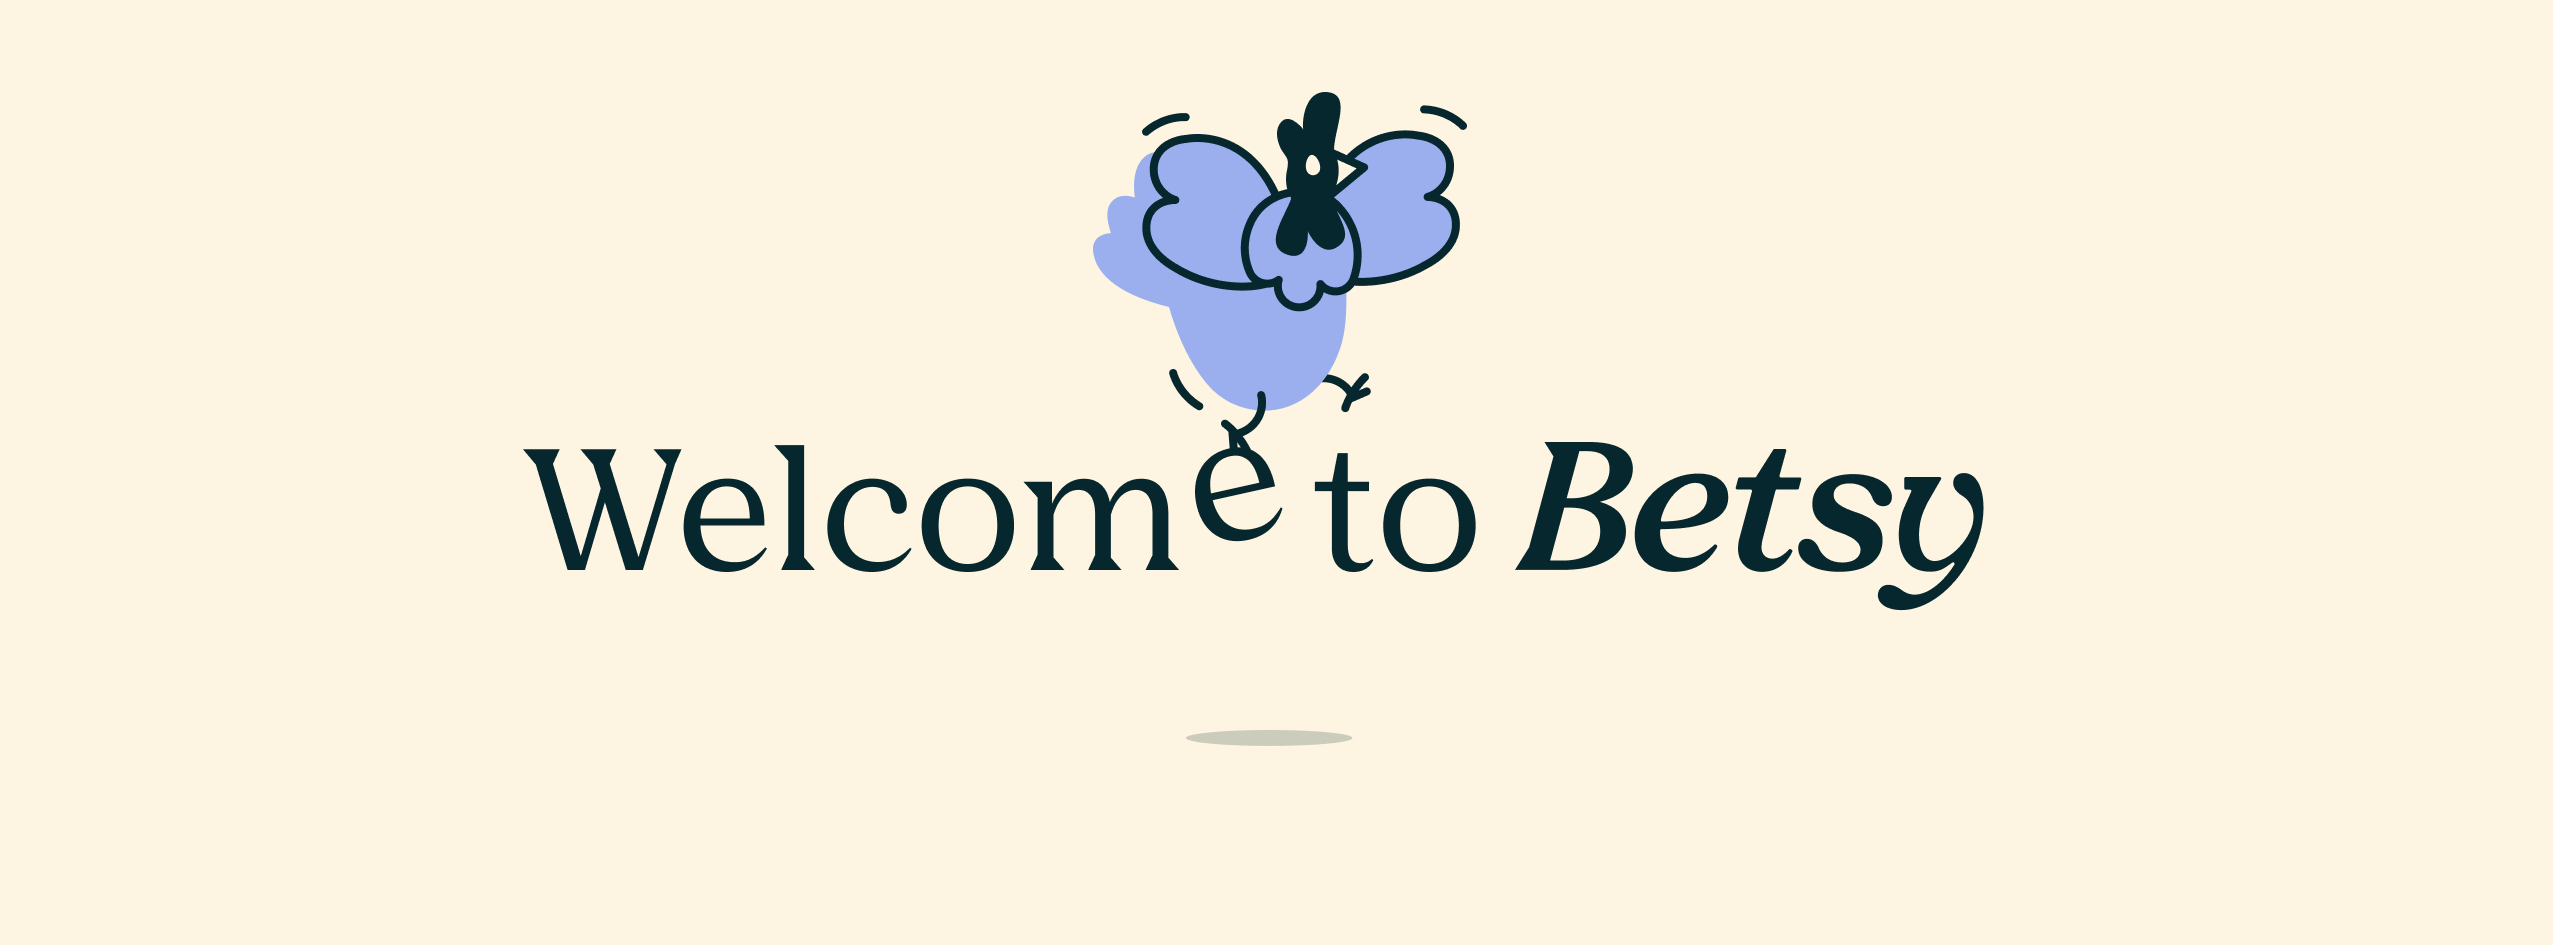 Welcome to Betsy